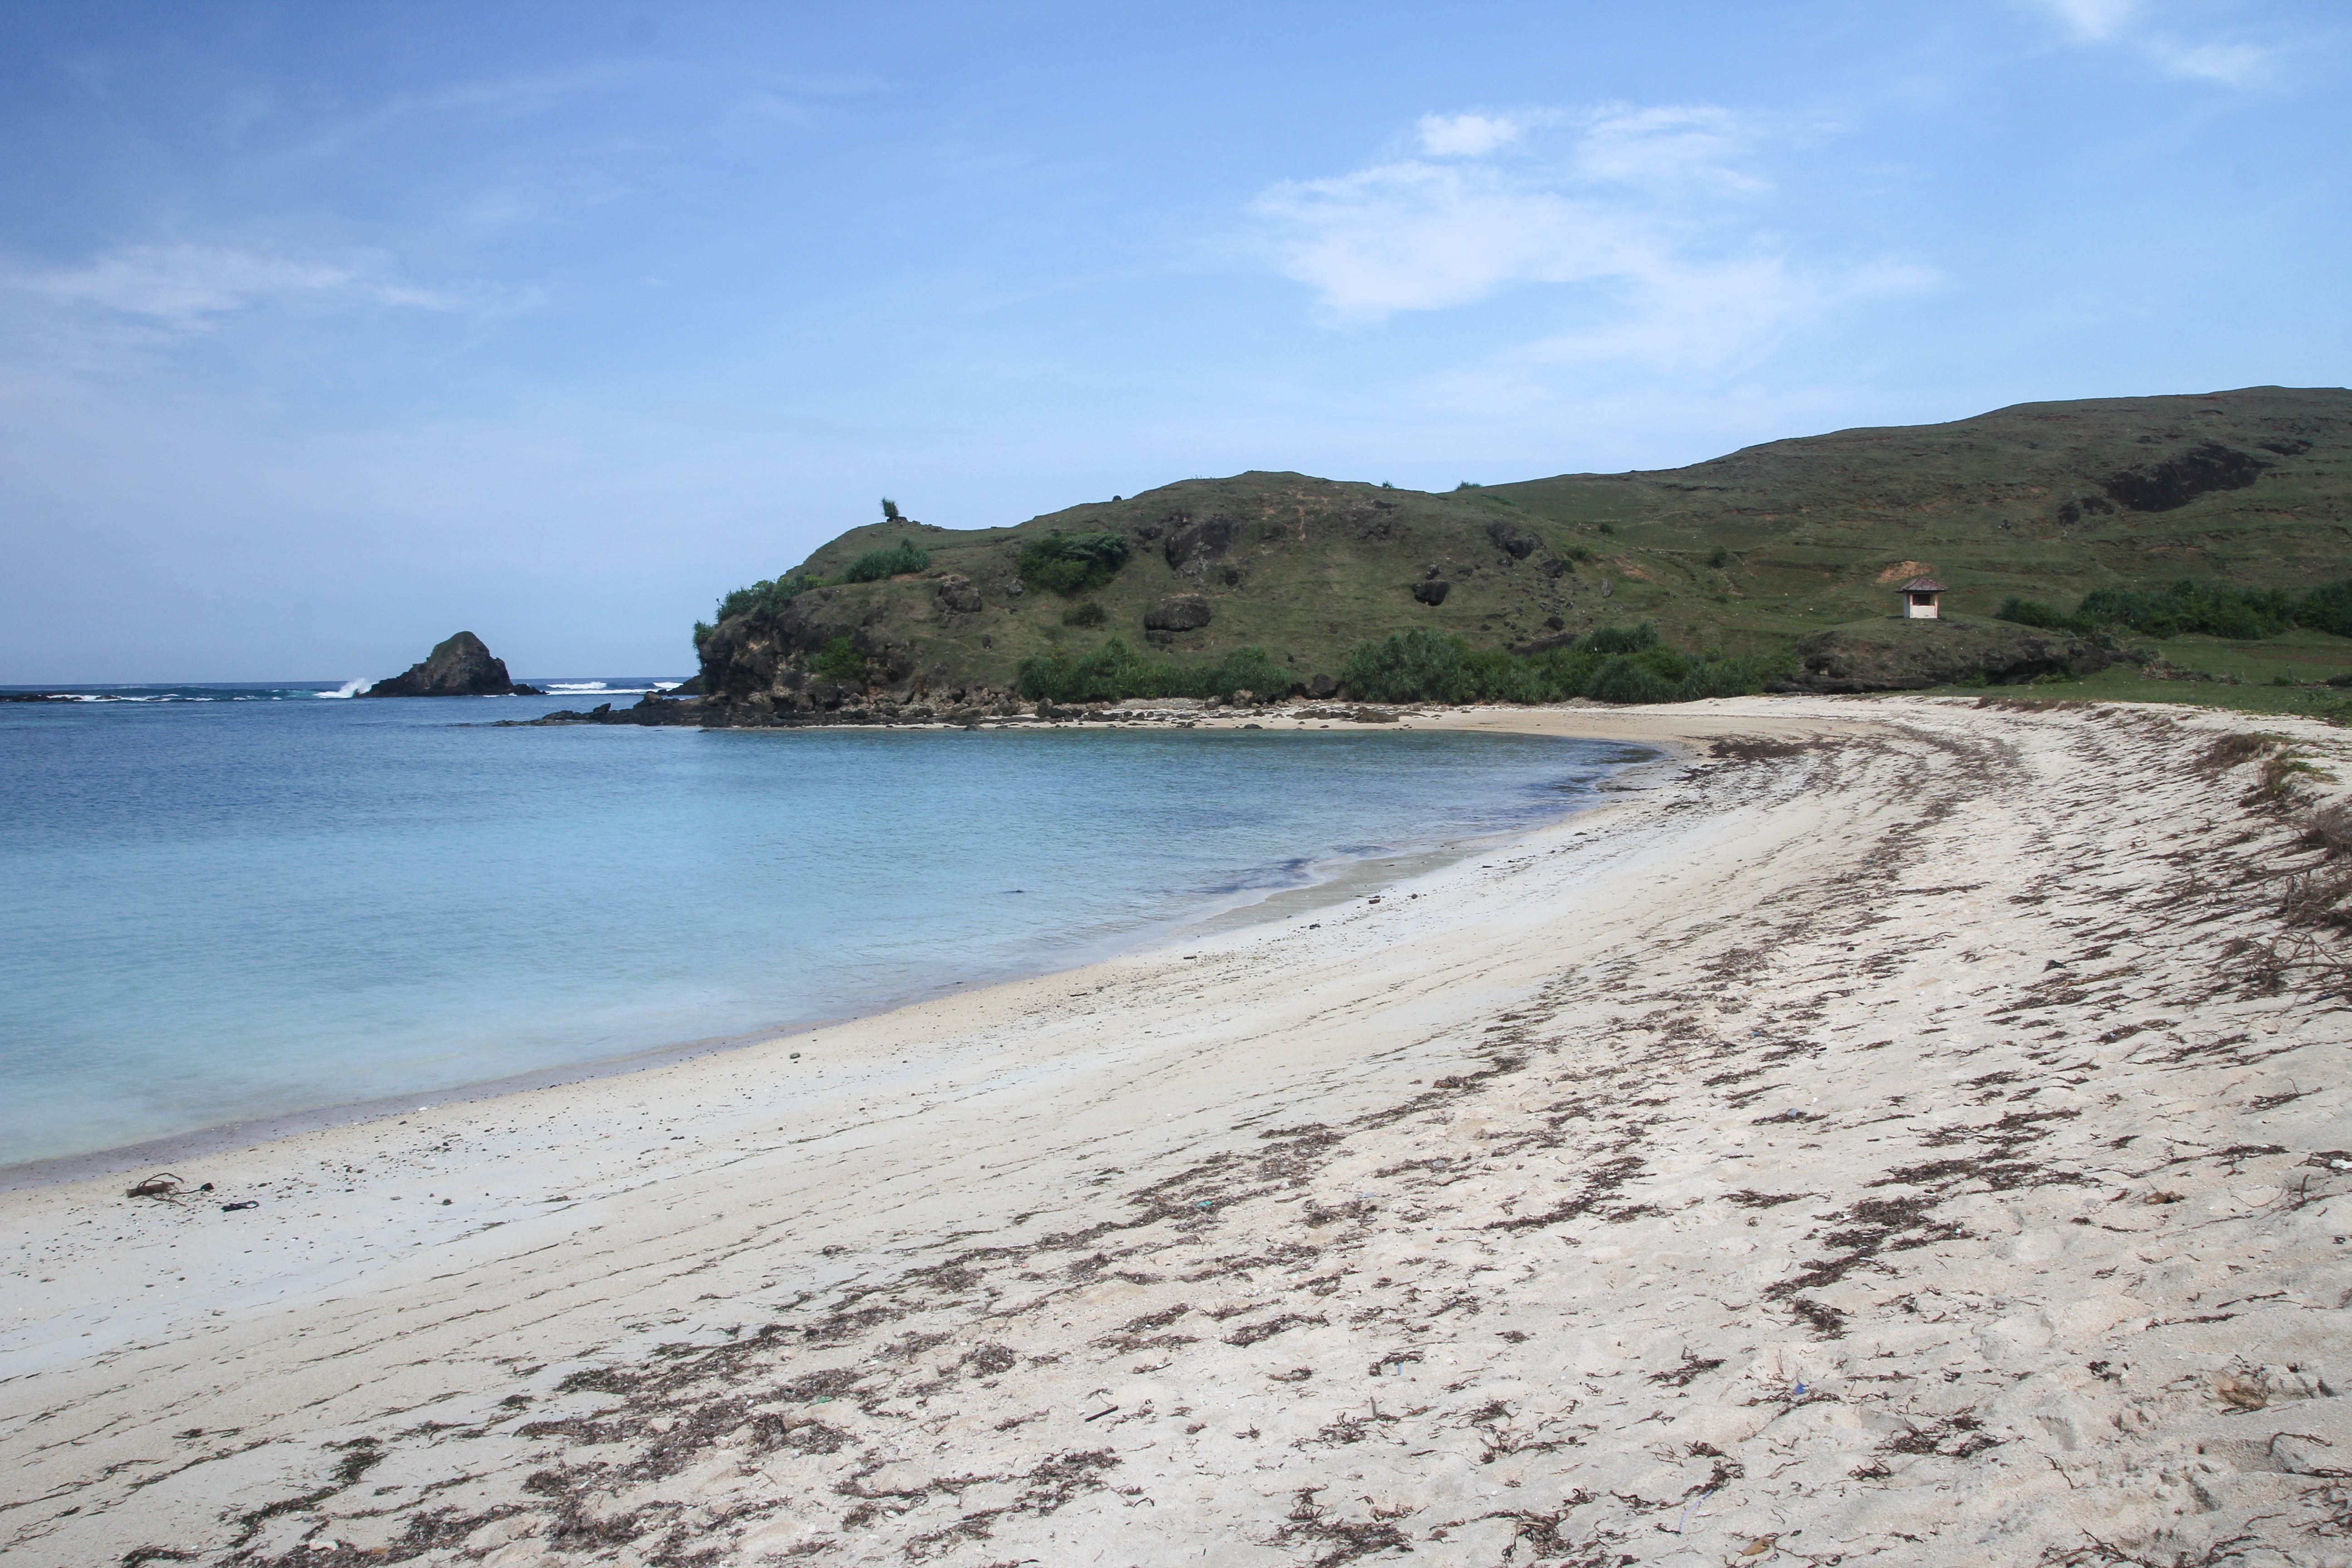 Indonesia - Lombok - Pantai (beach) Seger - Right side of the beach